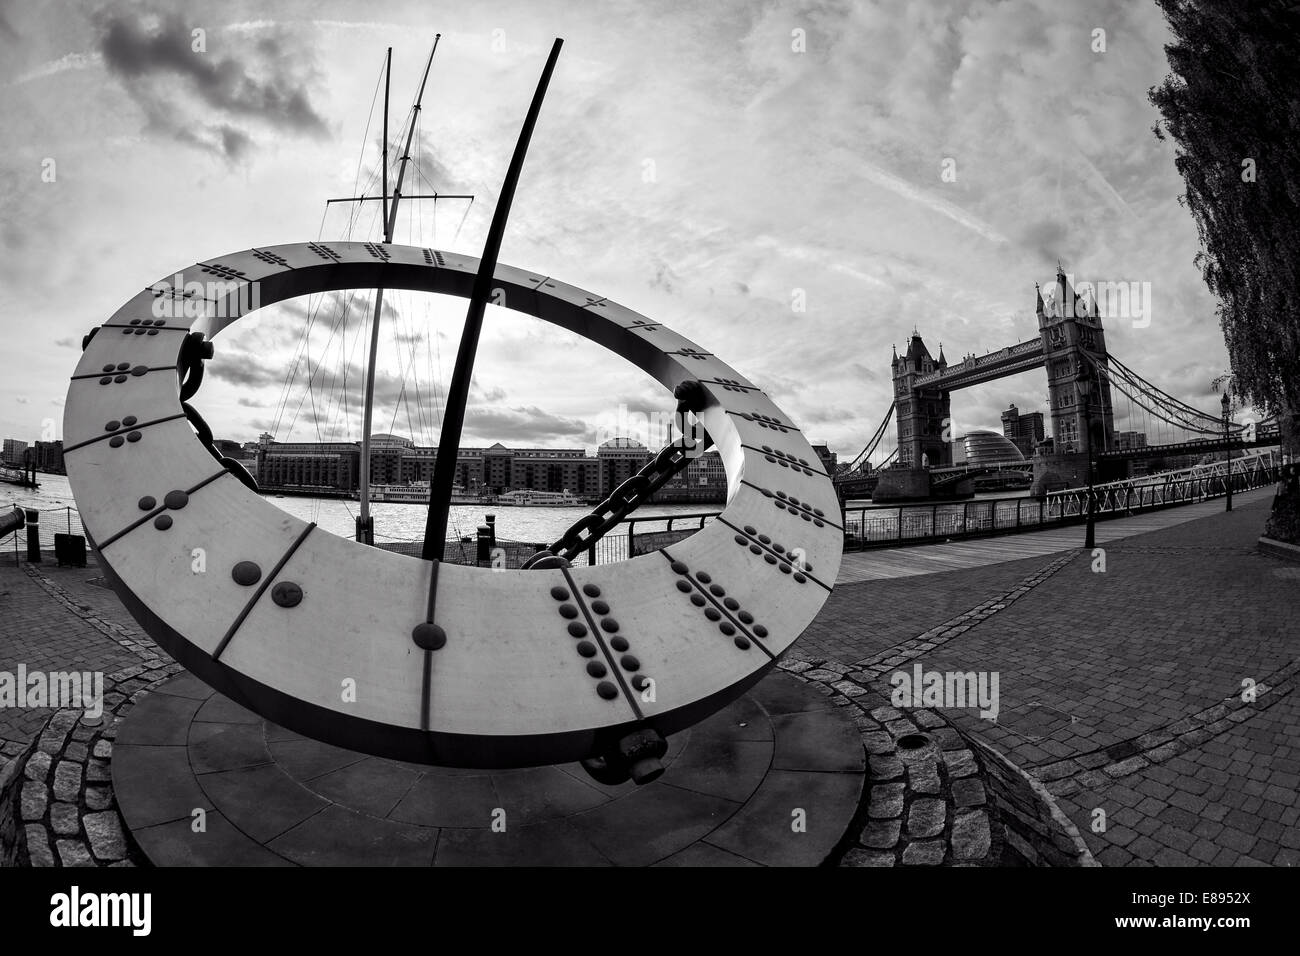 Close Up of Sundial at St Katharine's Dock with Tower Bridge and Butler's Wharf in Background - Stock Image